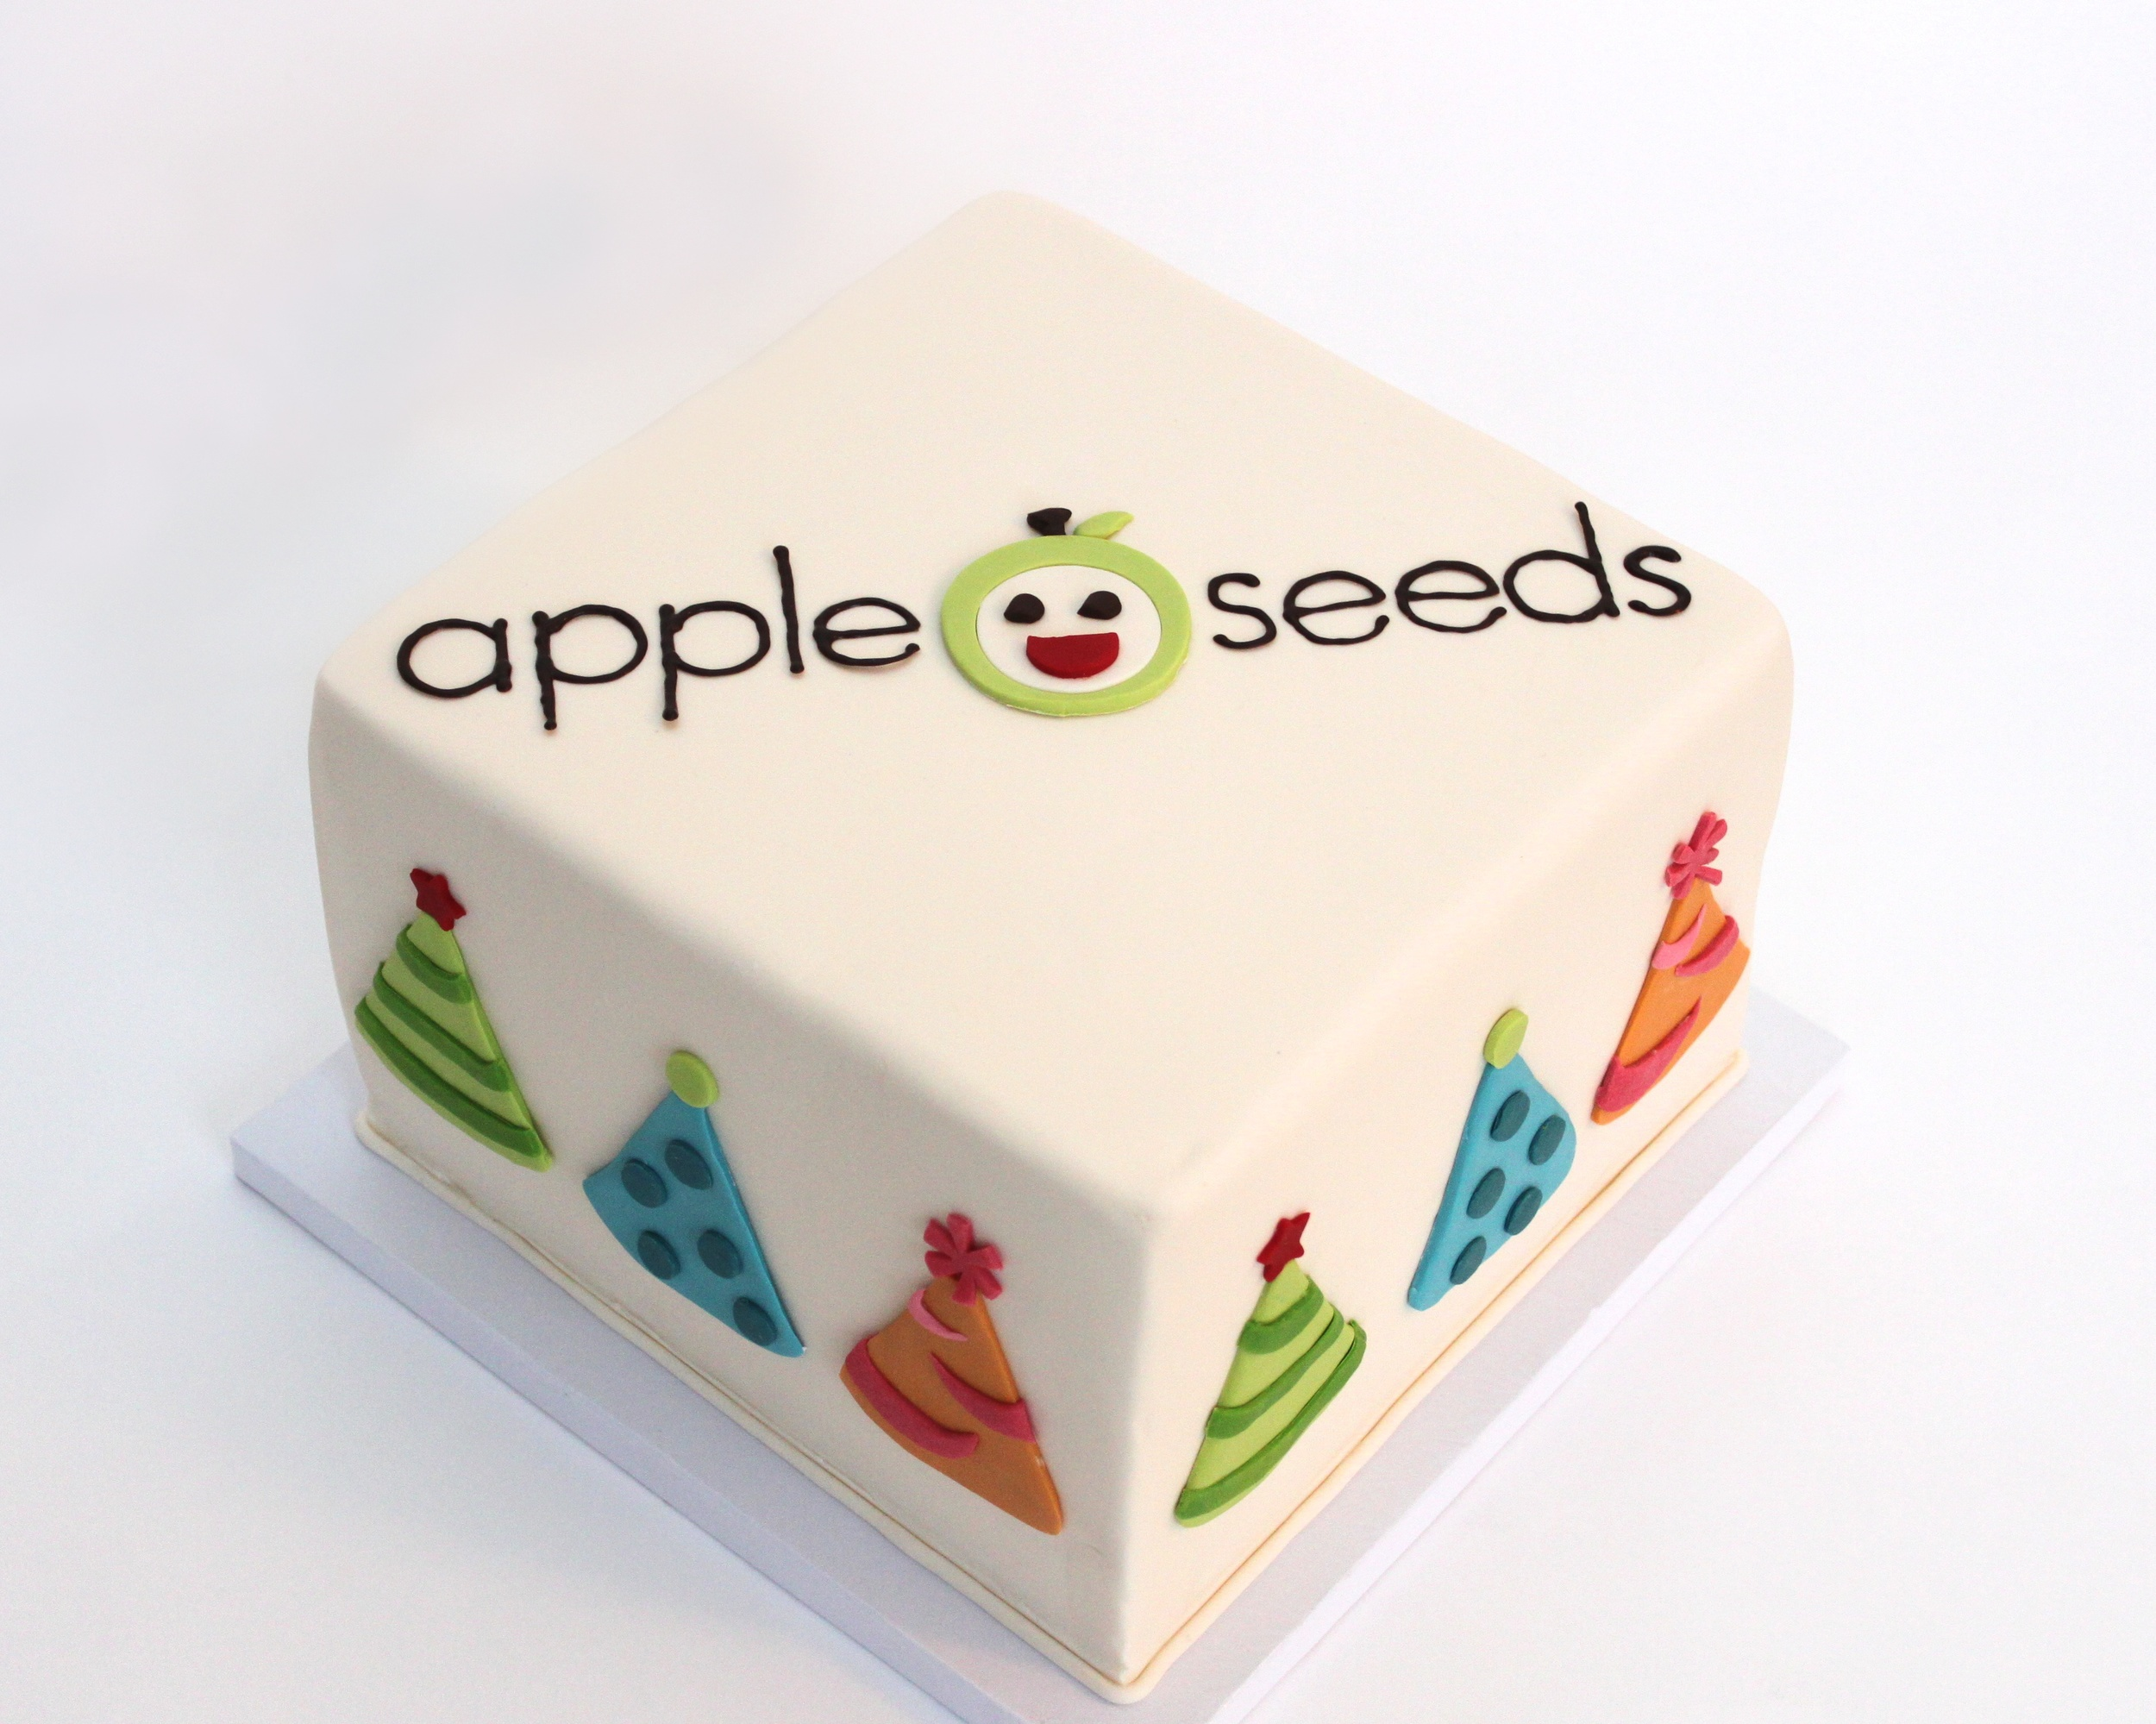 Appleseeds event cake 8715.jpg